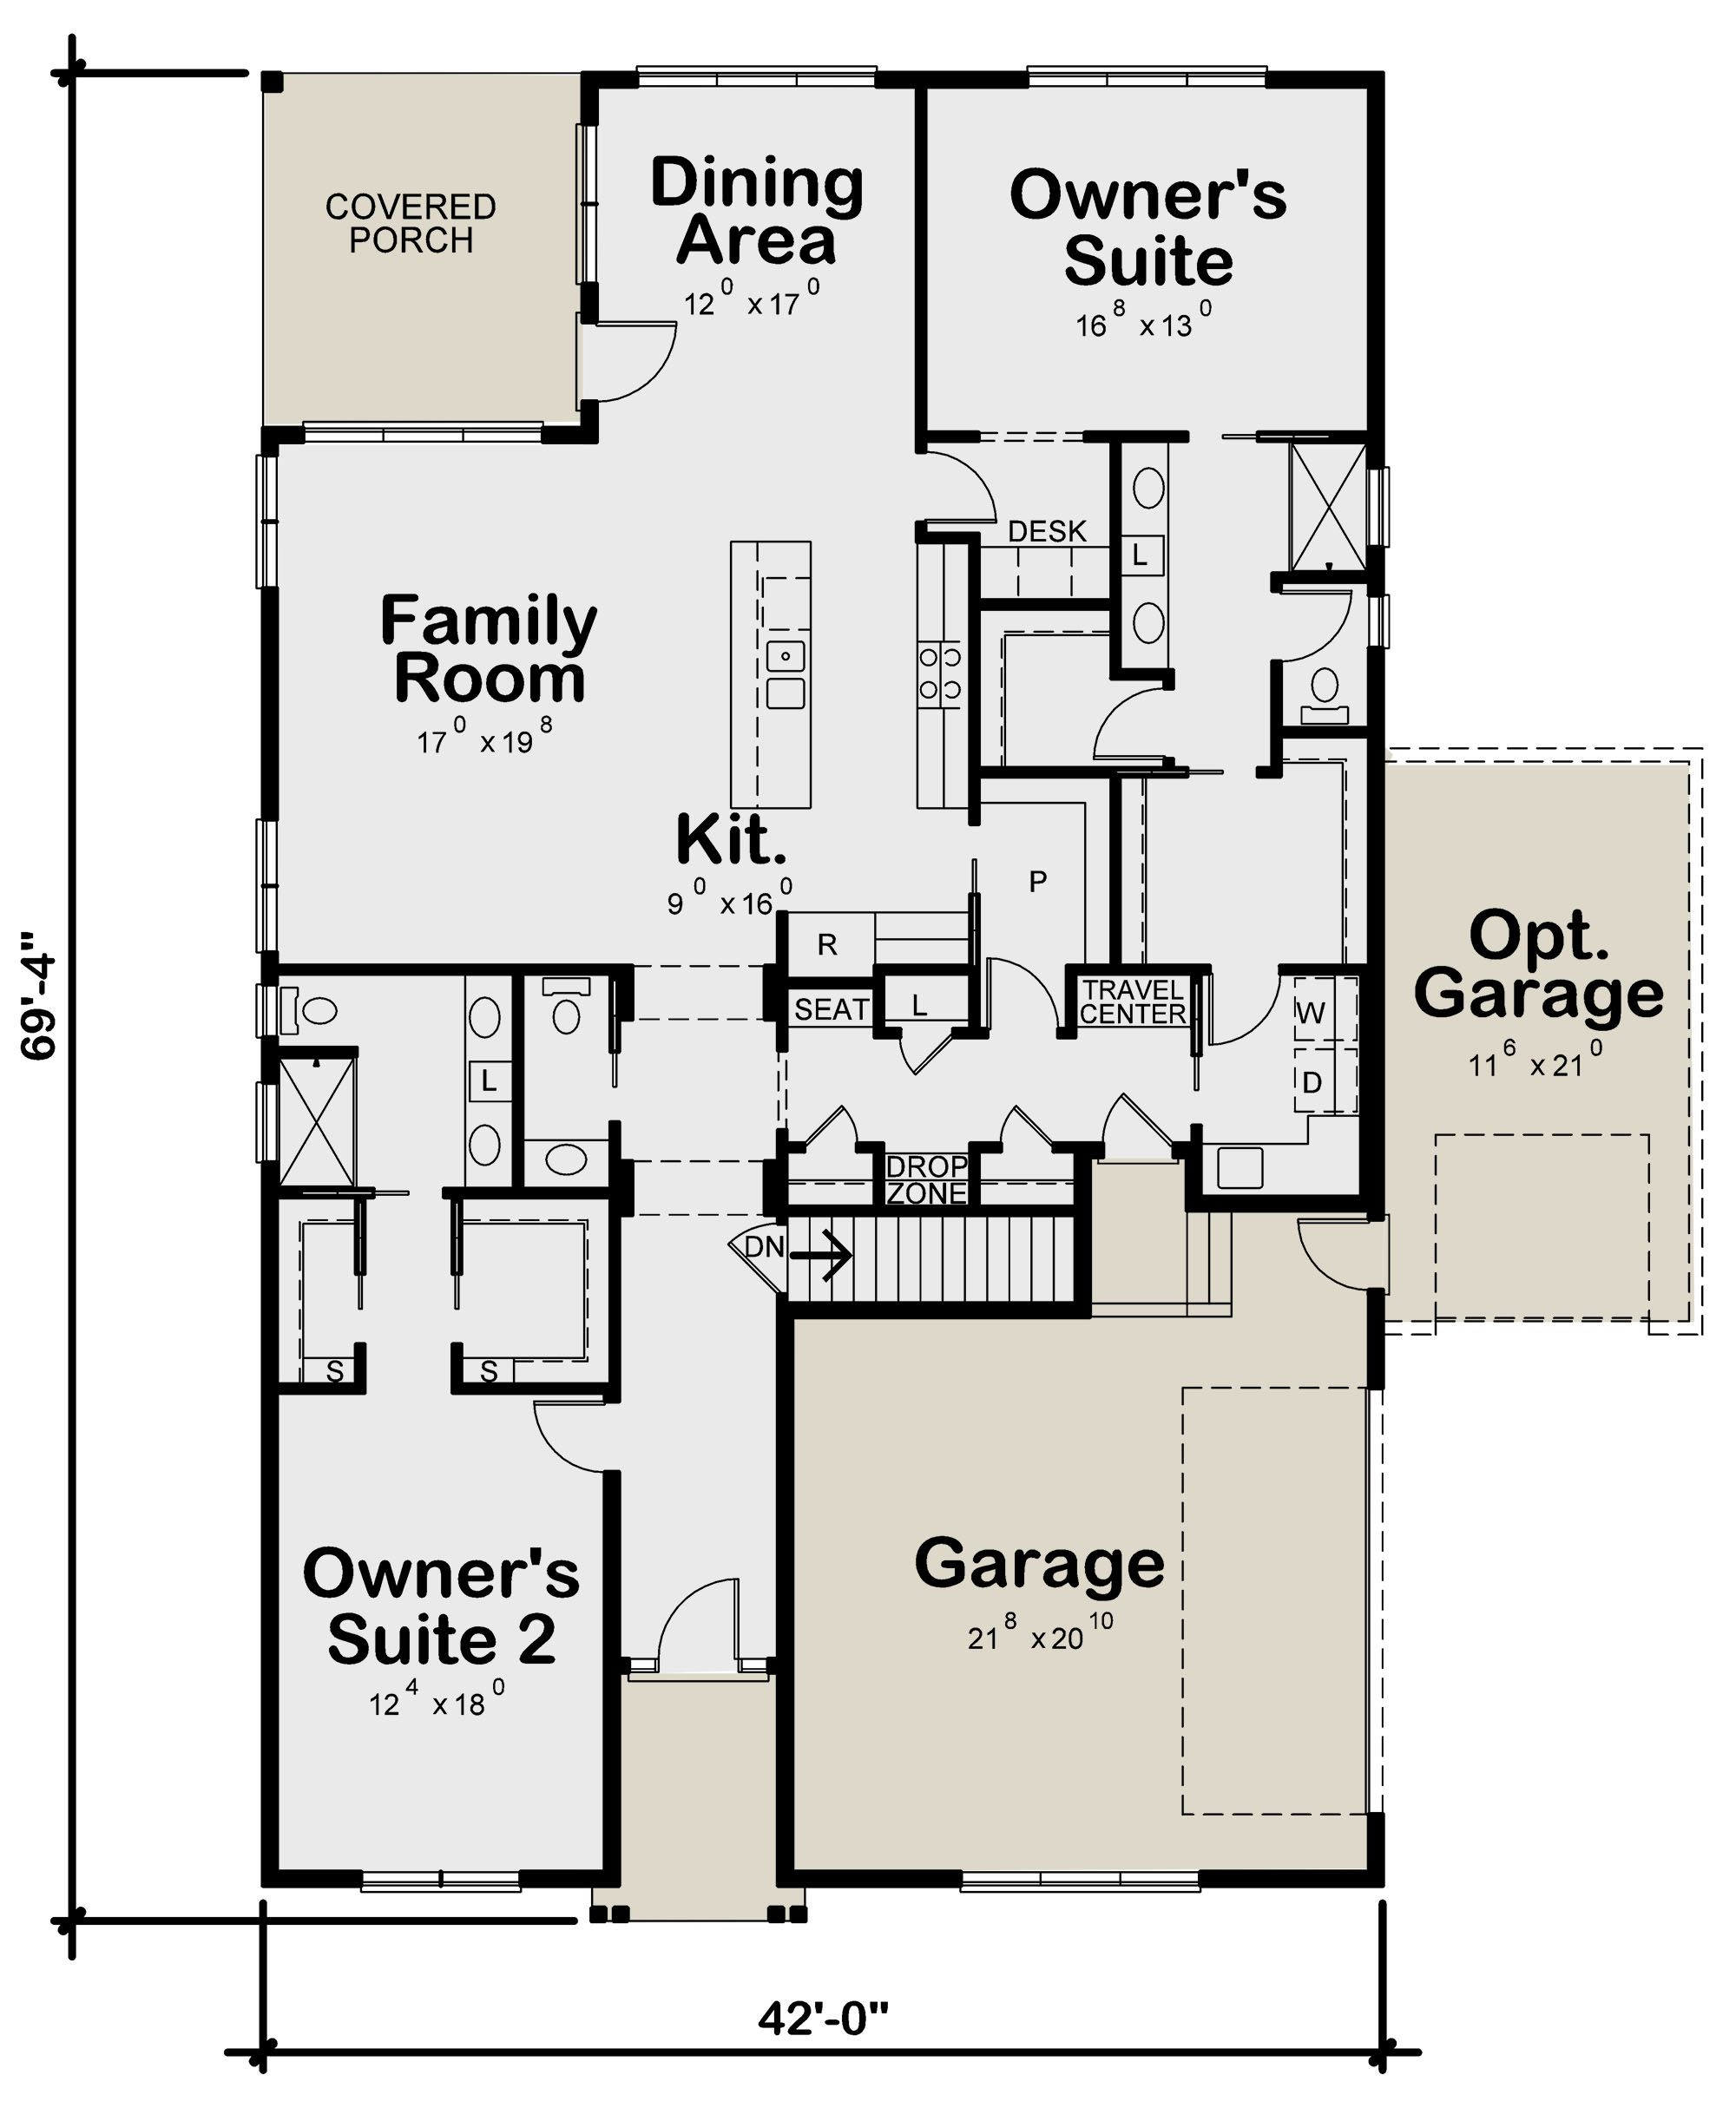 House Plan 402 01603 Ranch Plan 2 120 Square Feet 2 Bedrooms 2 5 Bathrooms Ranch House Plans House Plans Floor Plans